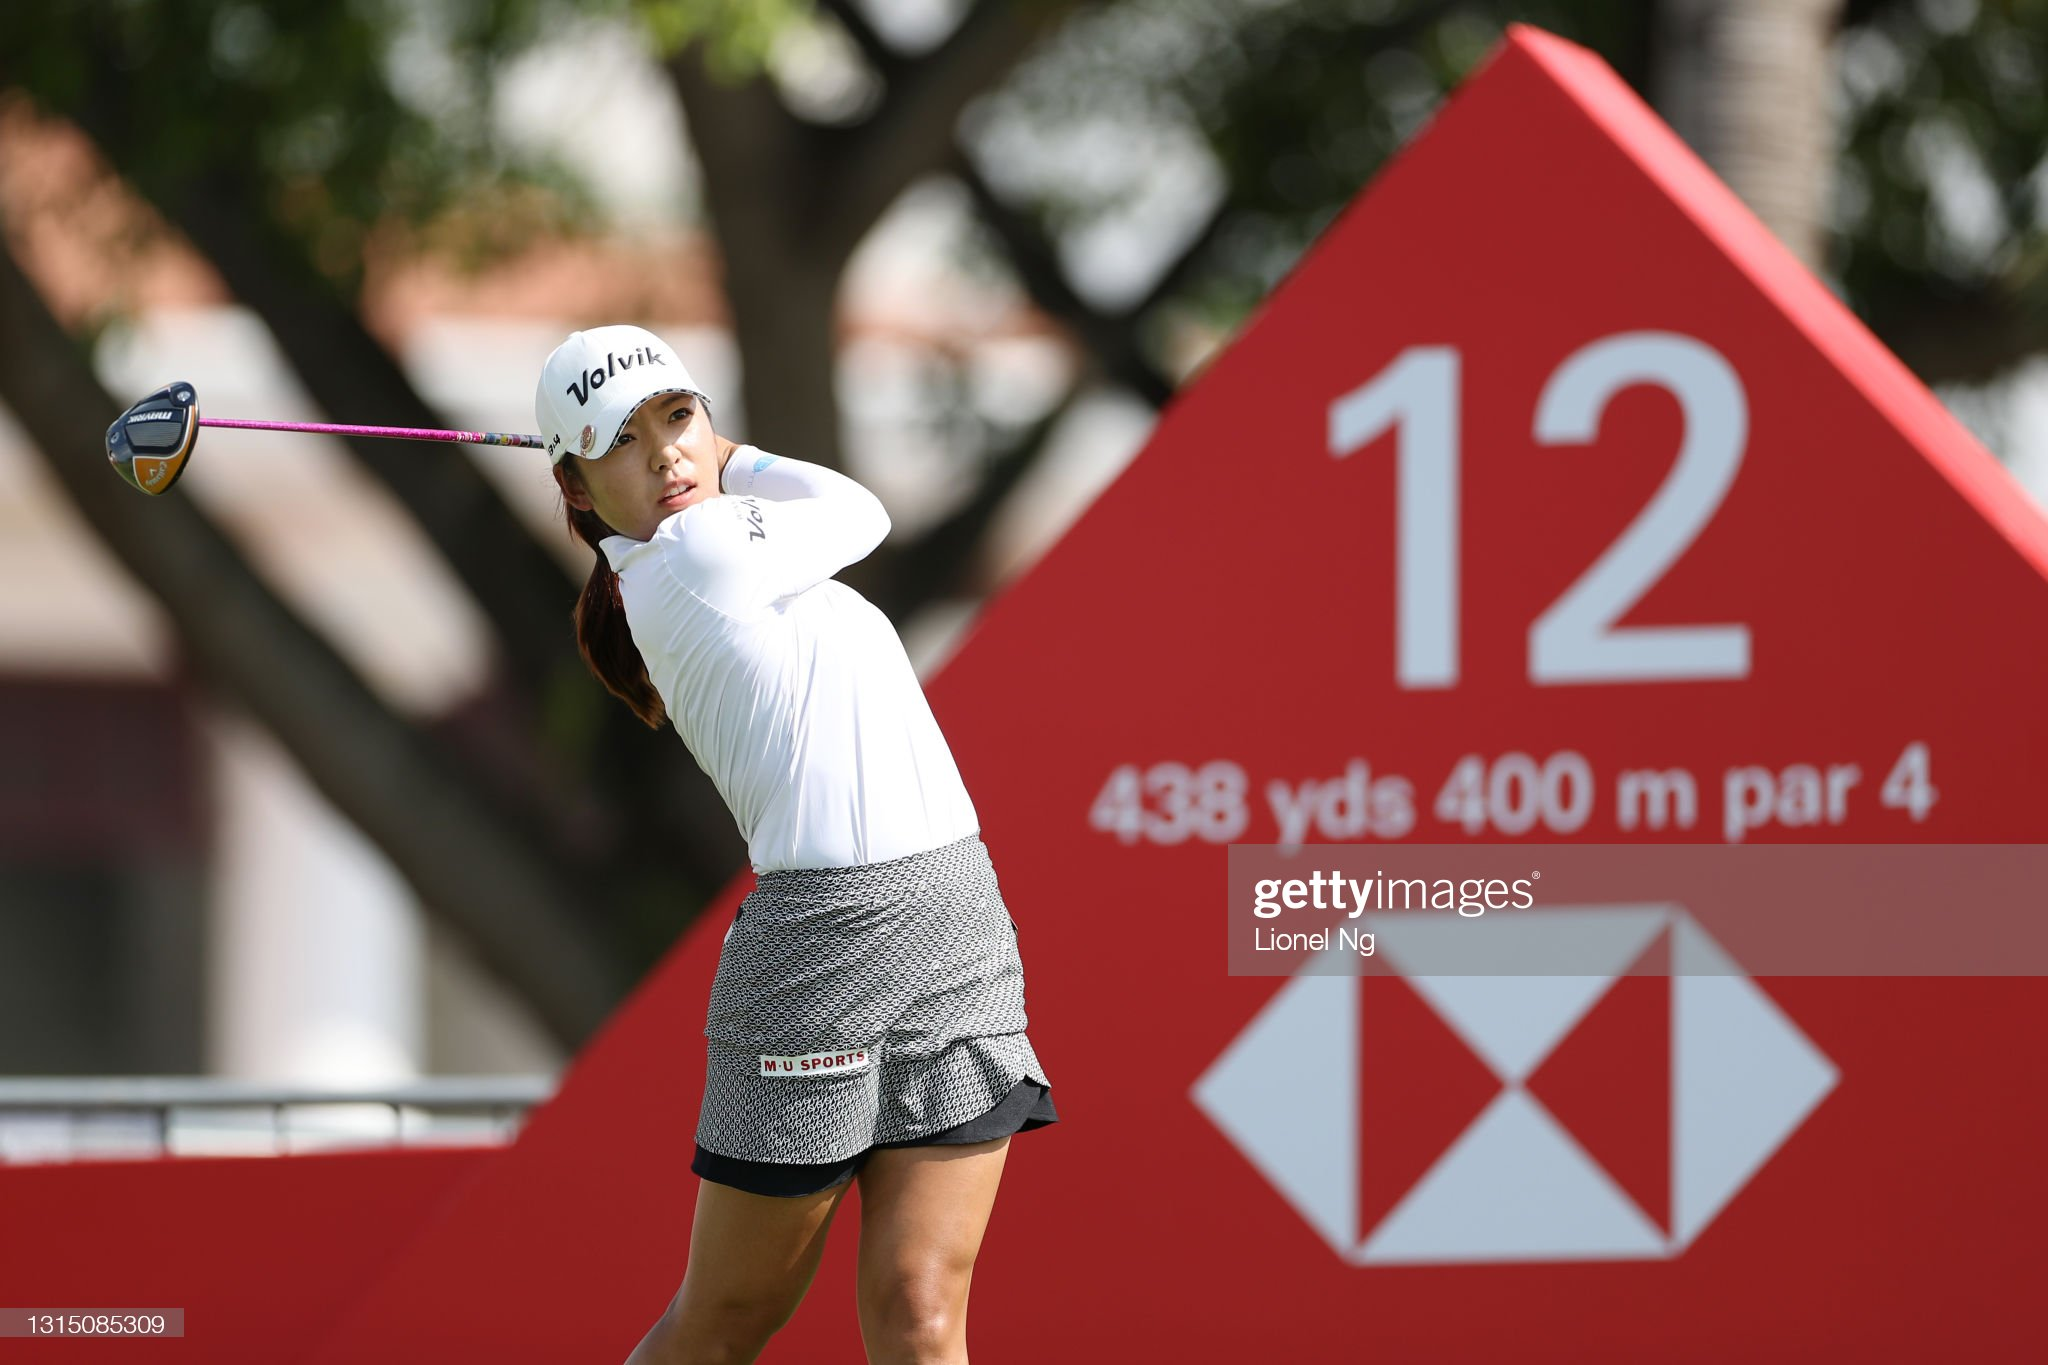 https://media.gettyimages.com/photos/mi-hyang-lee-of-south-korea-hits-her-tee-shot-on-the-12th-hole-during-picture-id1315085309?s=2048x2048